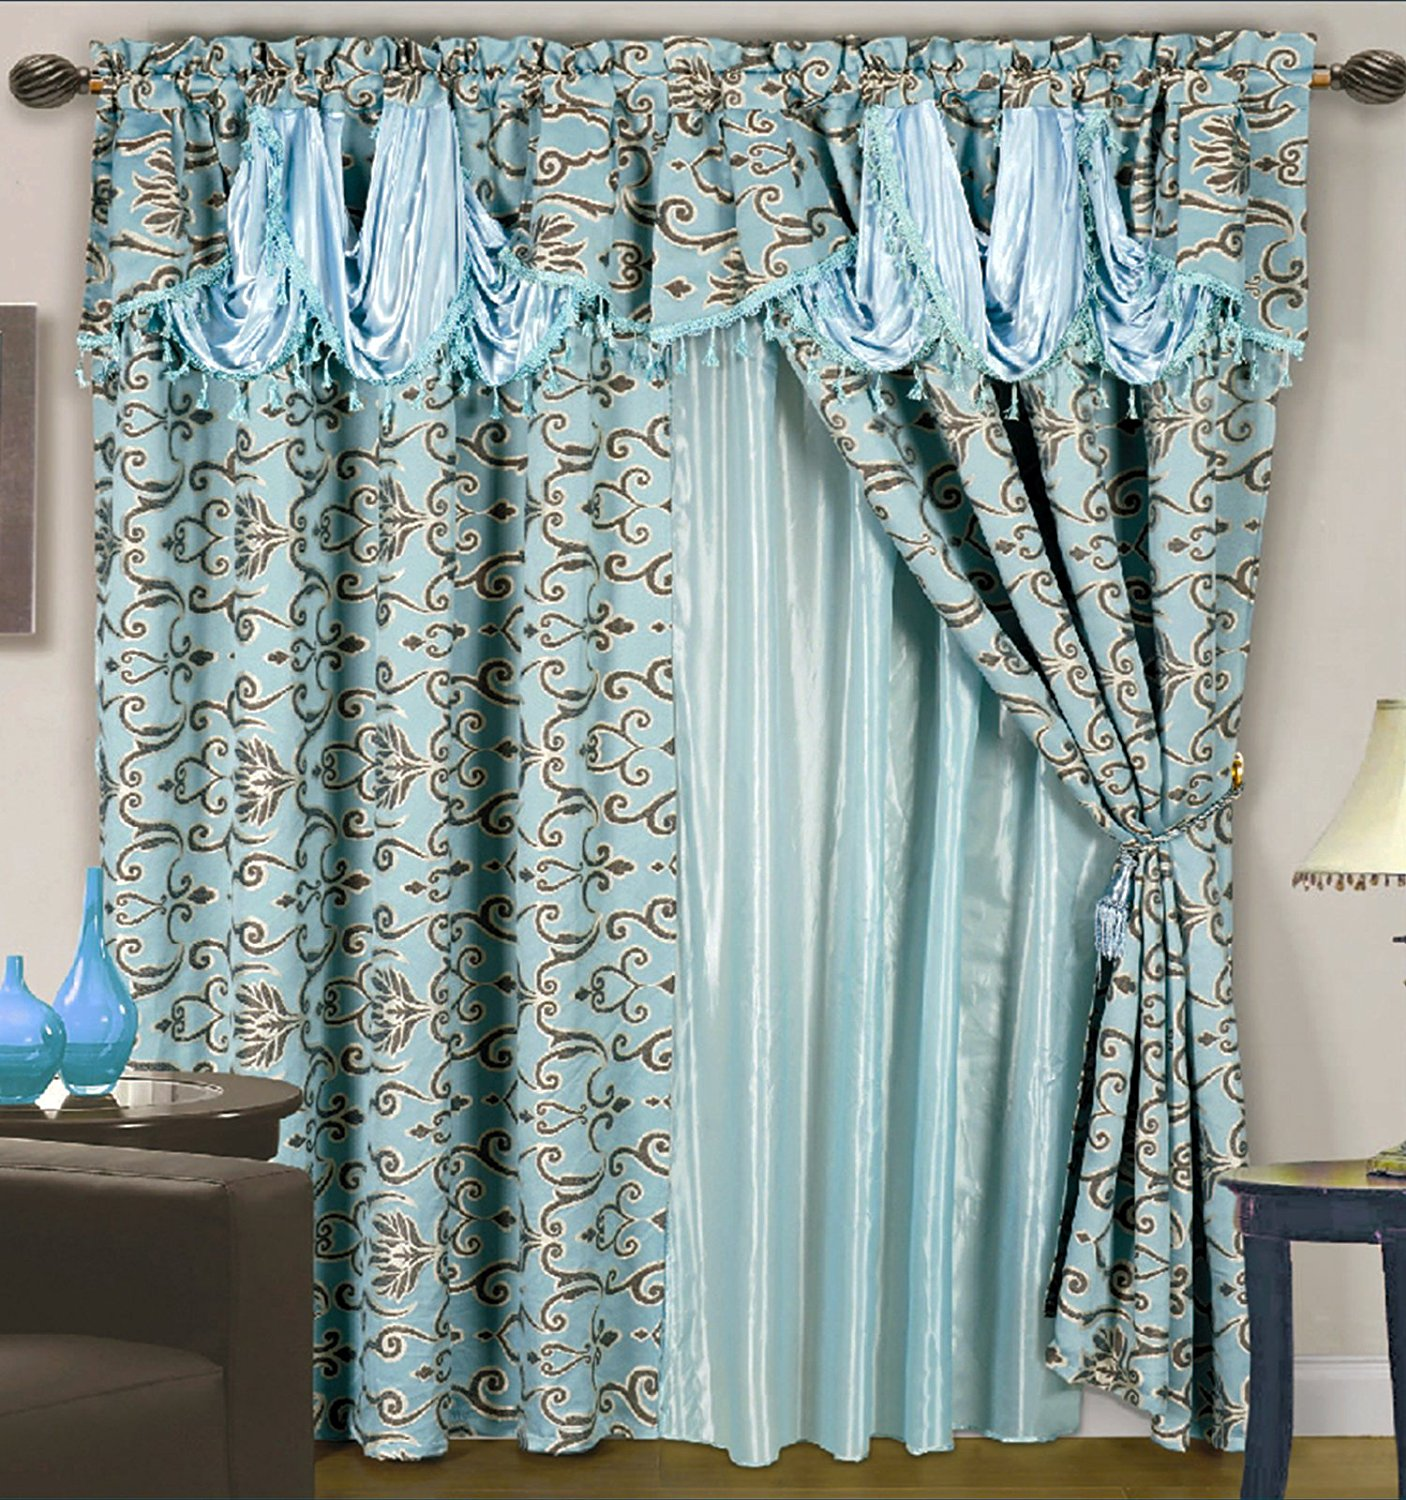 Get Quotations 4 Pc Luxurious Satin Jacquard Damask Curtain Set Waterfall Valance Blue Teal